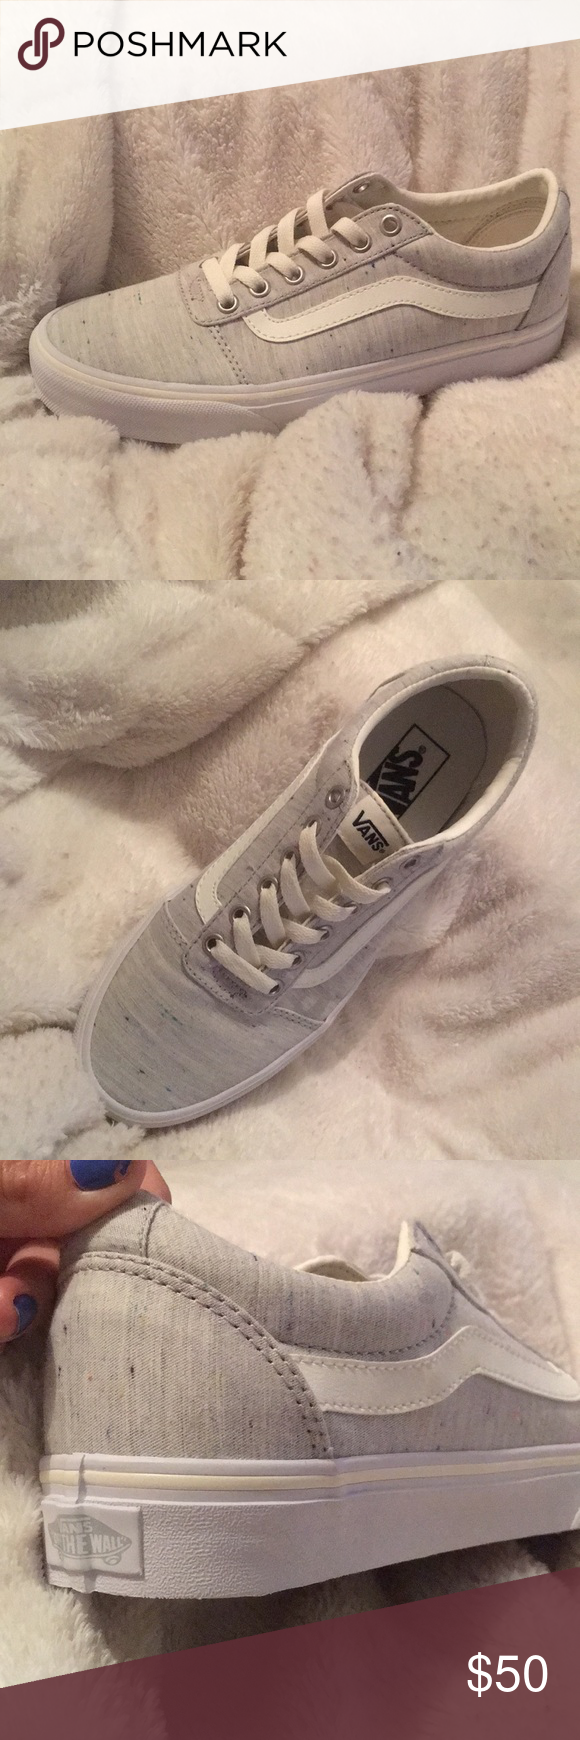 44c8193dbeb003 BRAND NEW ! . Jersey speckled old school vans So cute !!! I am ...